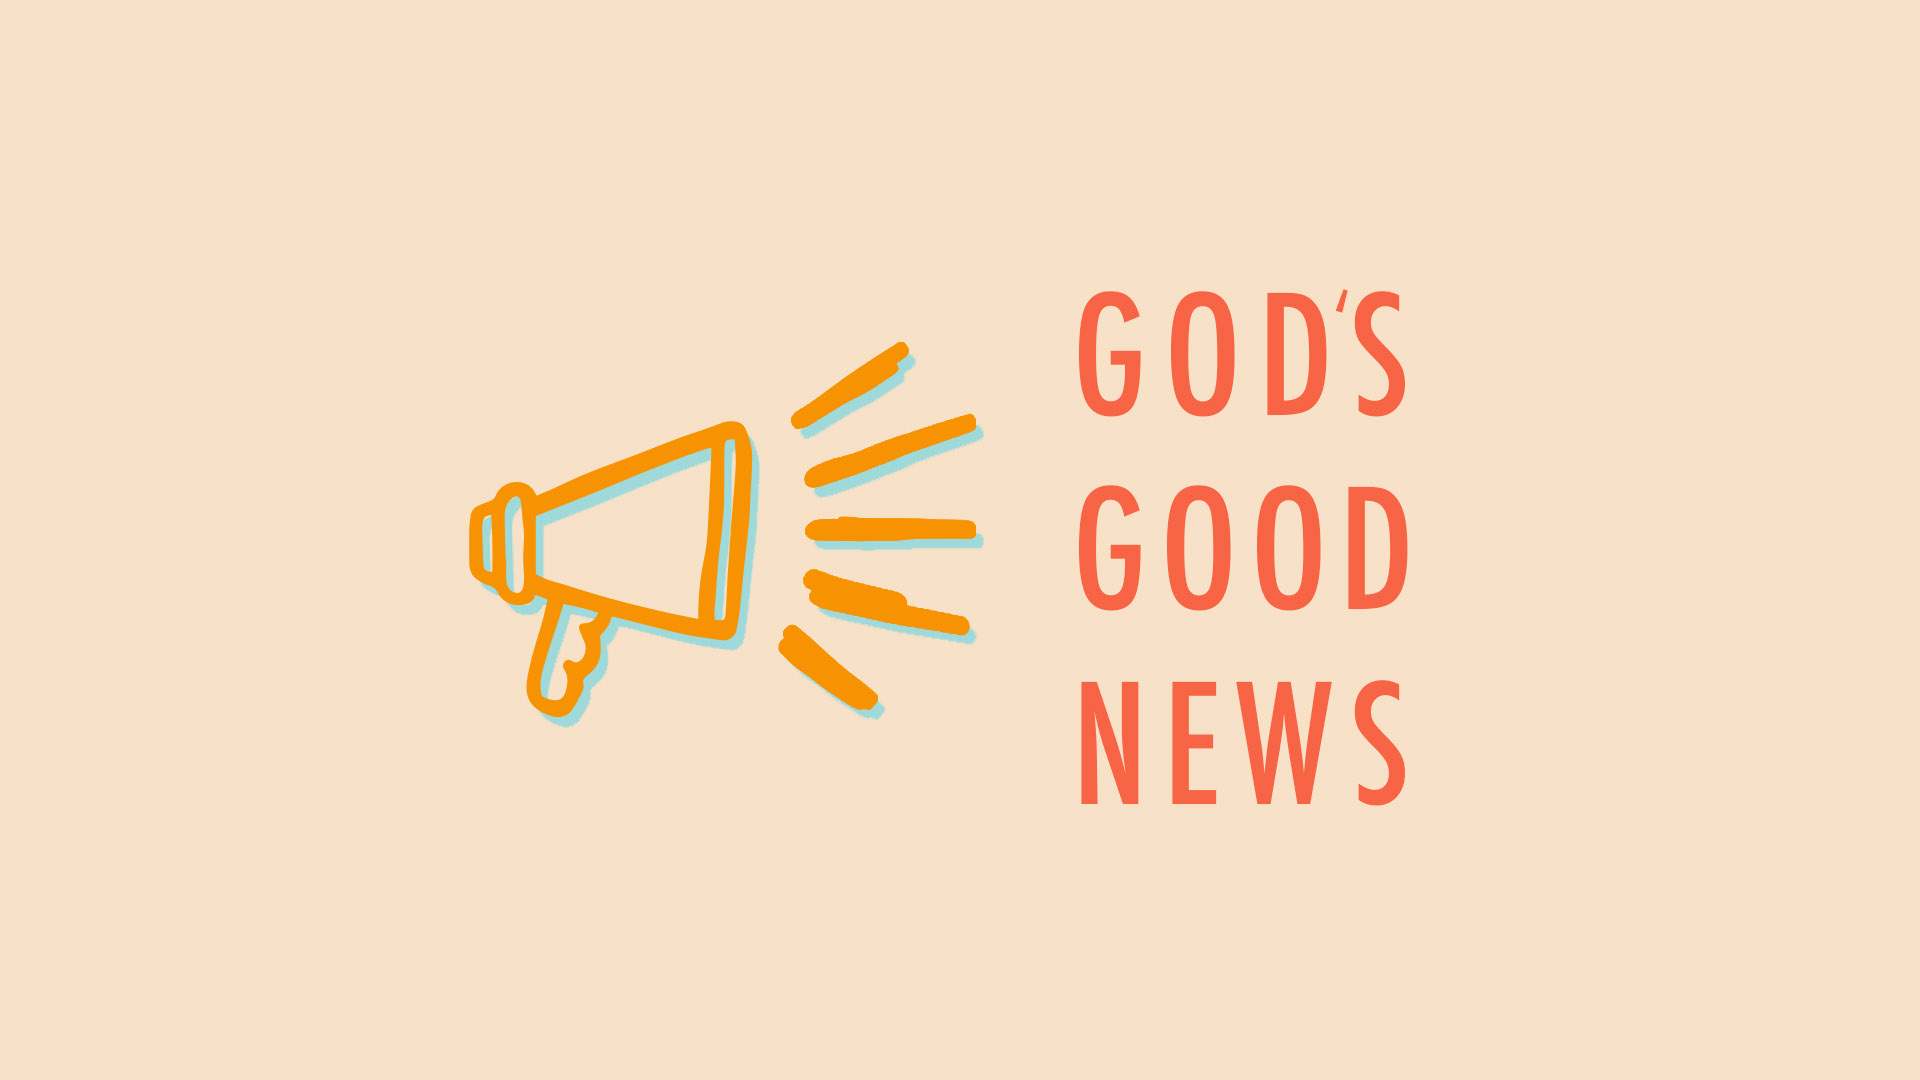 st-johns-harborne-sermon-series-gods-good-news-web.jpg